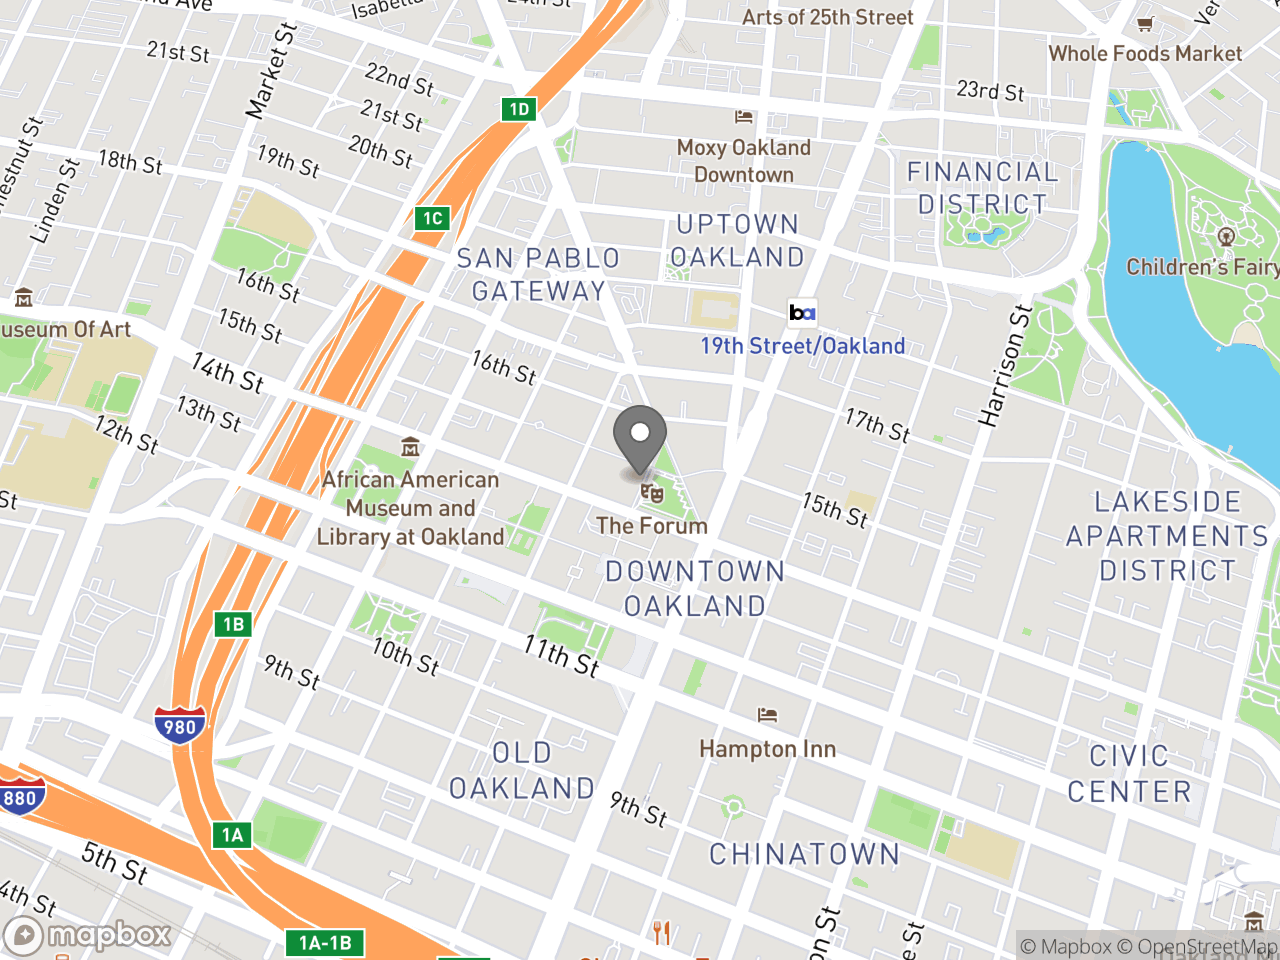 Map location for August 8, 2018 Design Review Committee Meeting, located at 1 Frank H Ogawa Plaza in Oakland, CA 94612